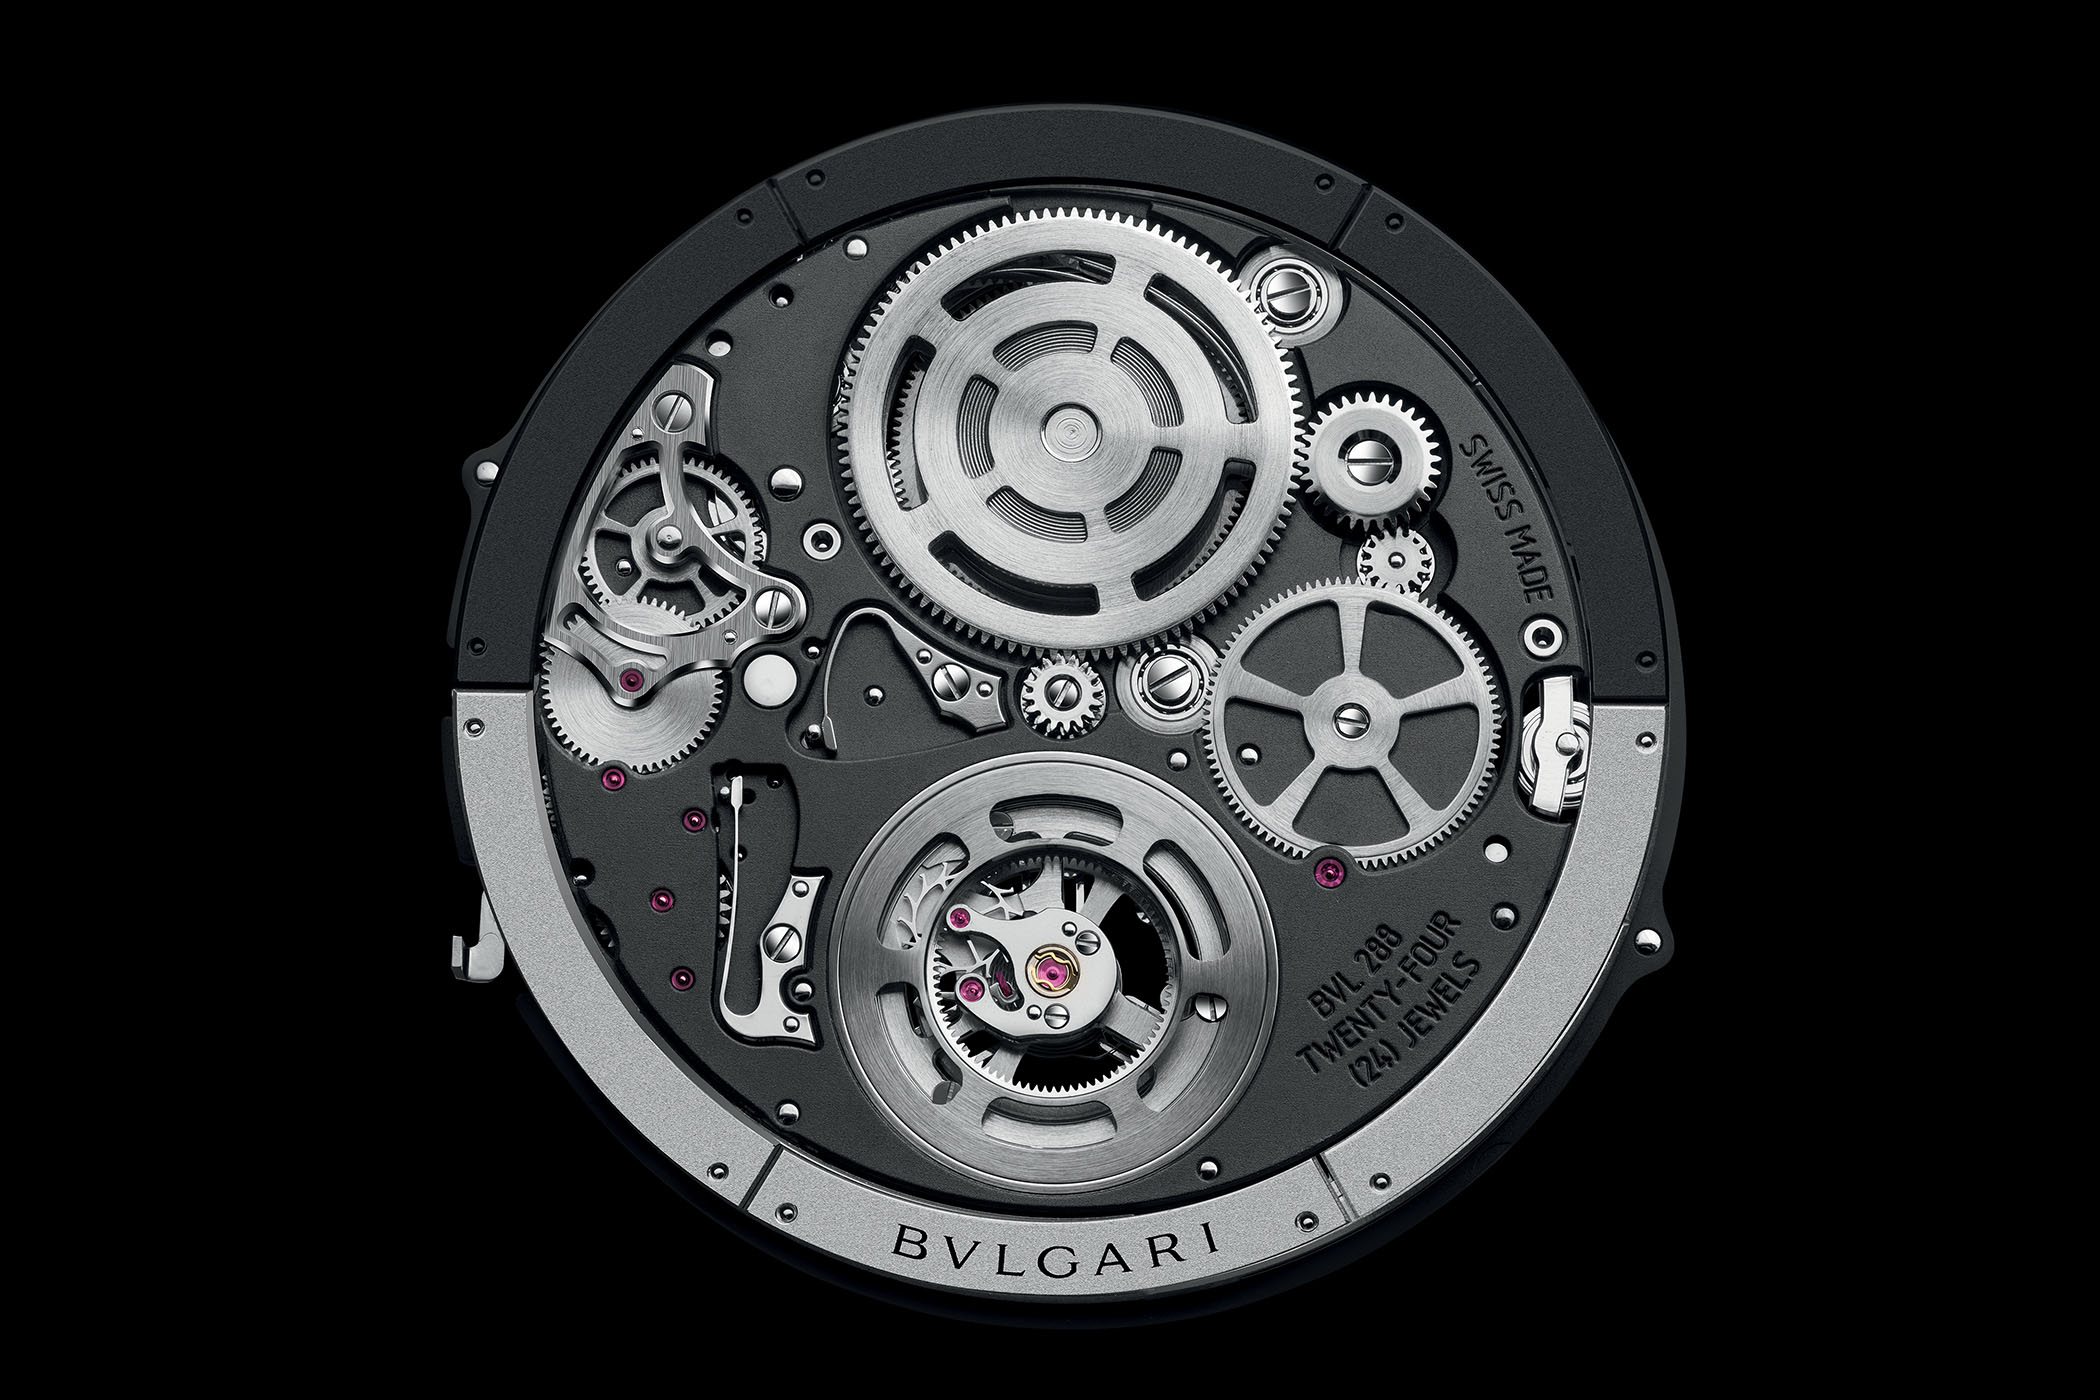 Bulgari Octo Finissimo Tourbillon Automatic - World's Thinnest Automatic Watch and Tourbillon - Baselworld 2018